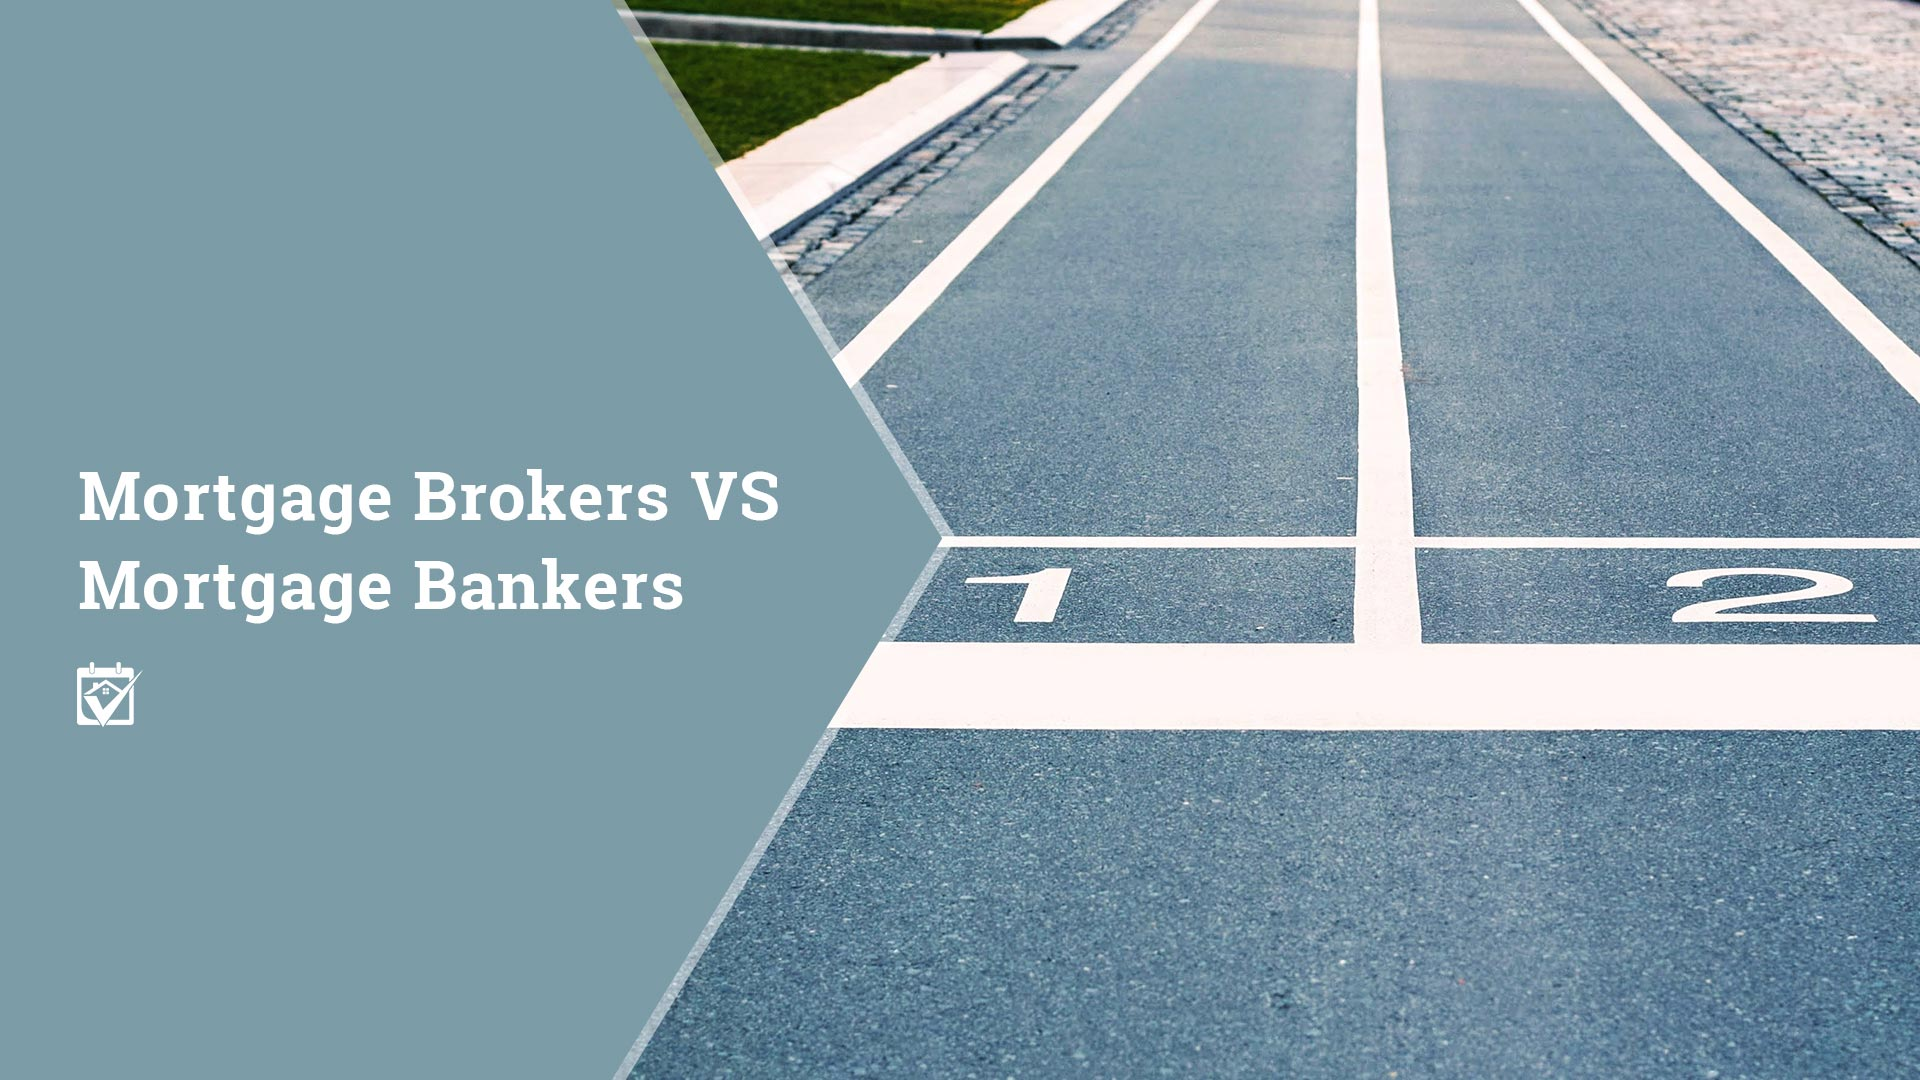 Mortgage Brokers VS Mortgage Bankers